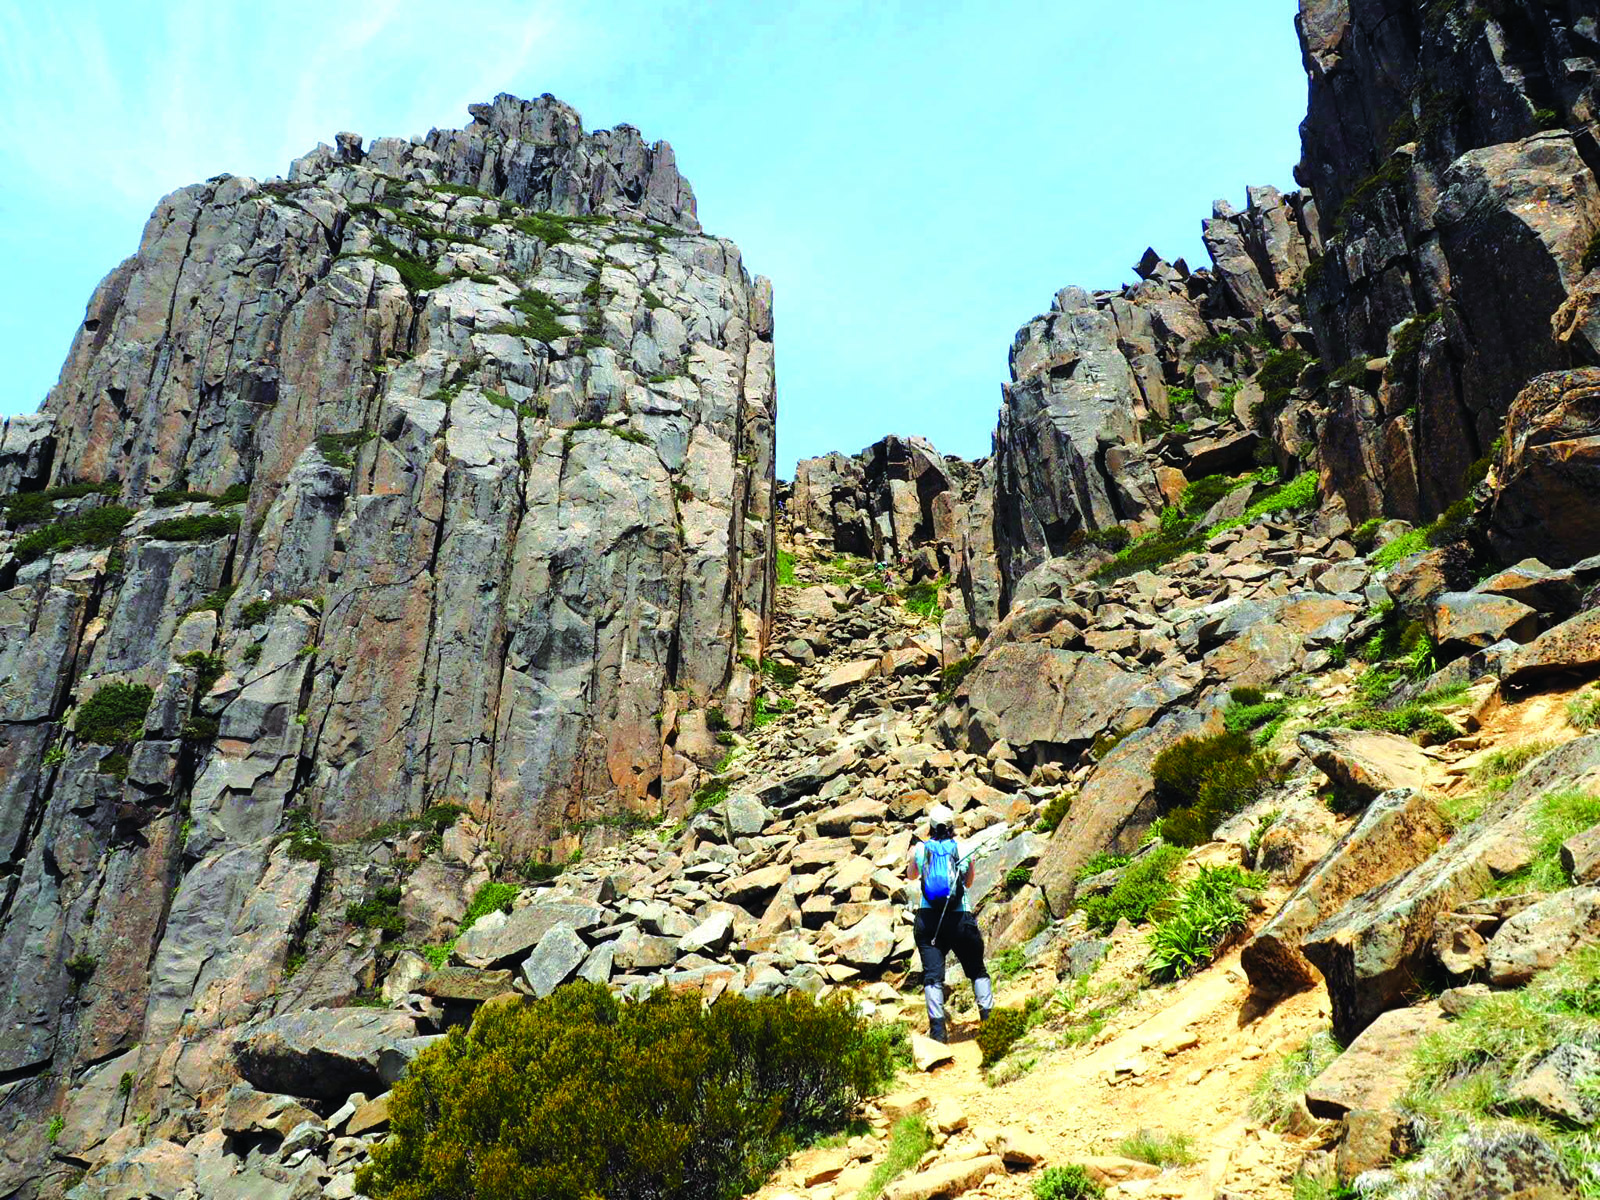 Geological wonders on the Overland Track. Picture Credit: Nikki Kube